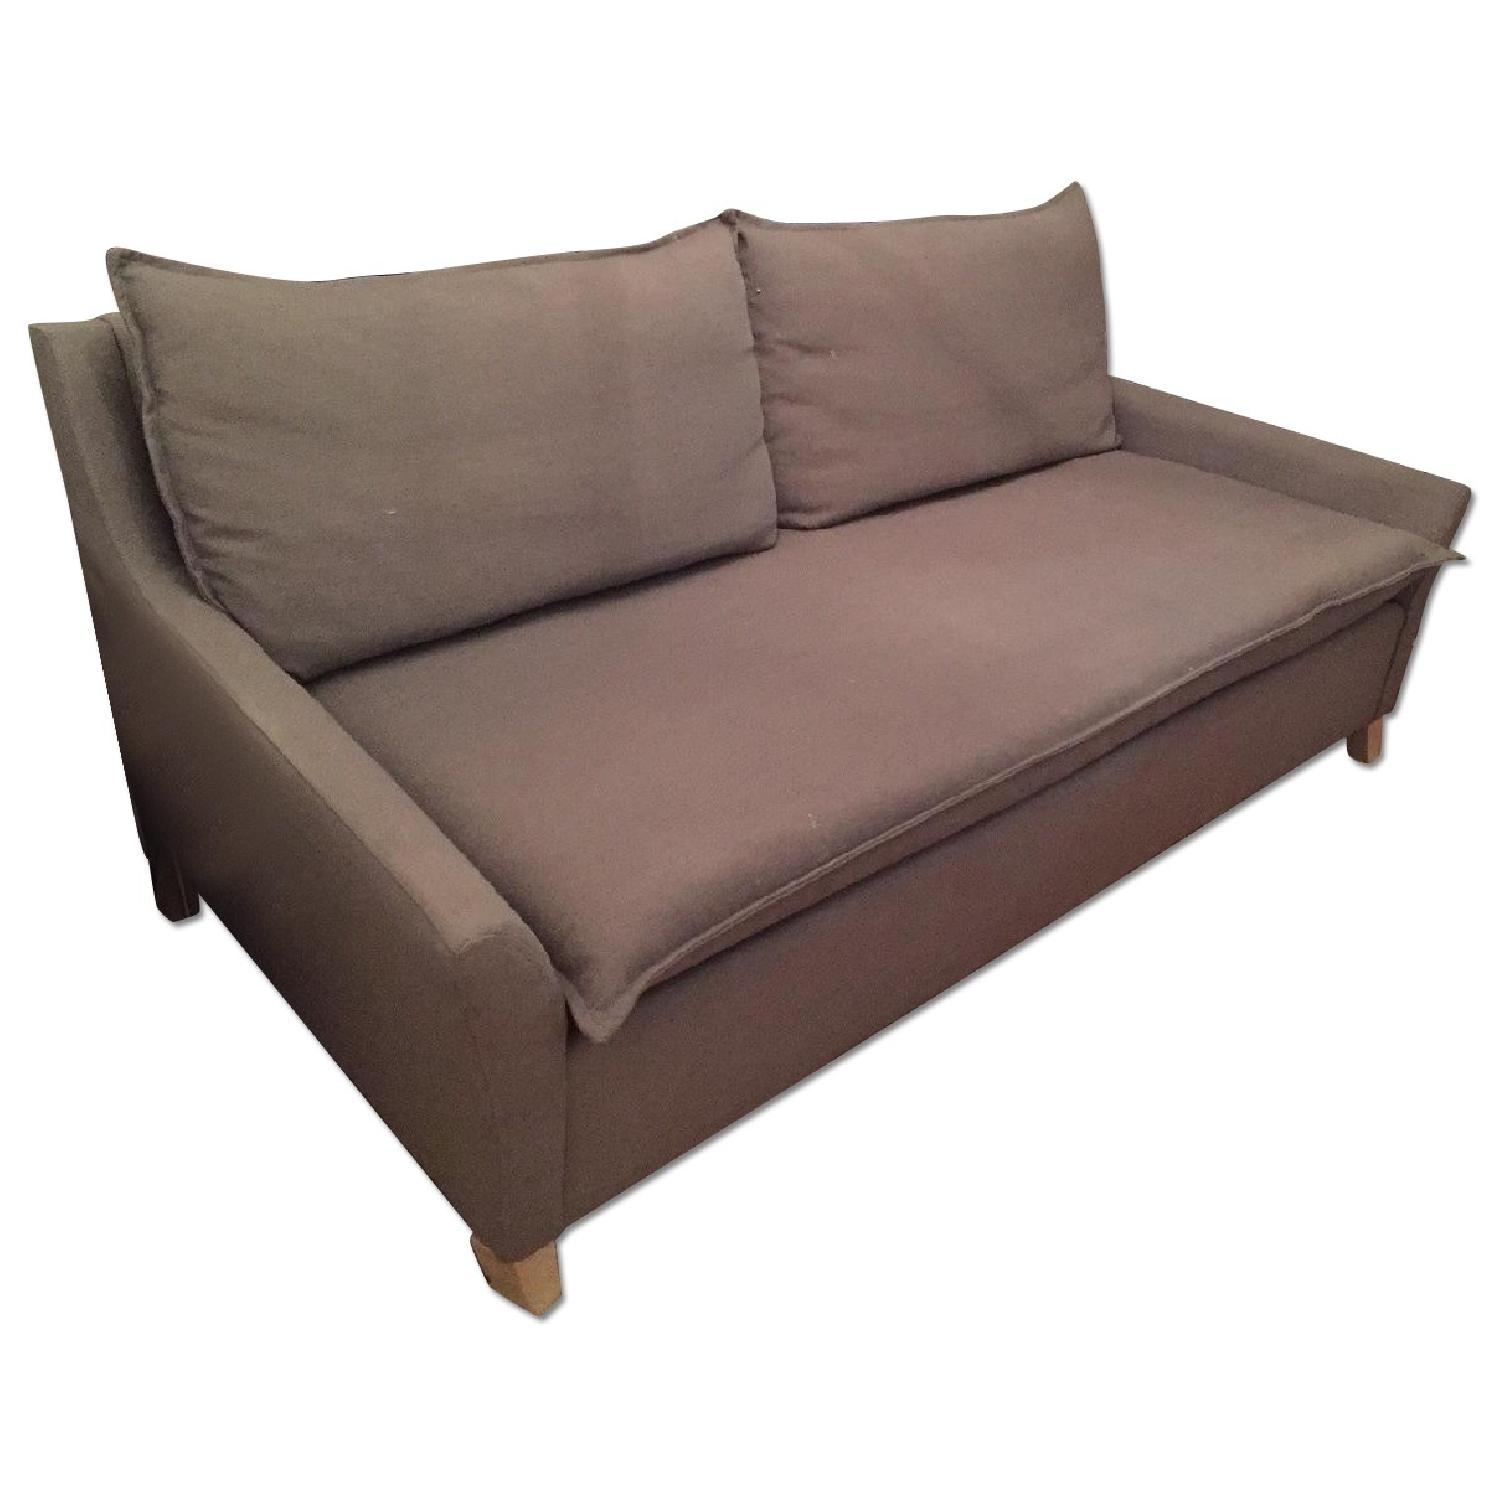 West Elm Bliss Down-Filled Sofa - image-0